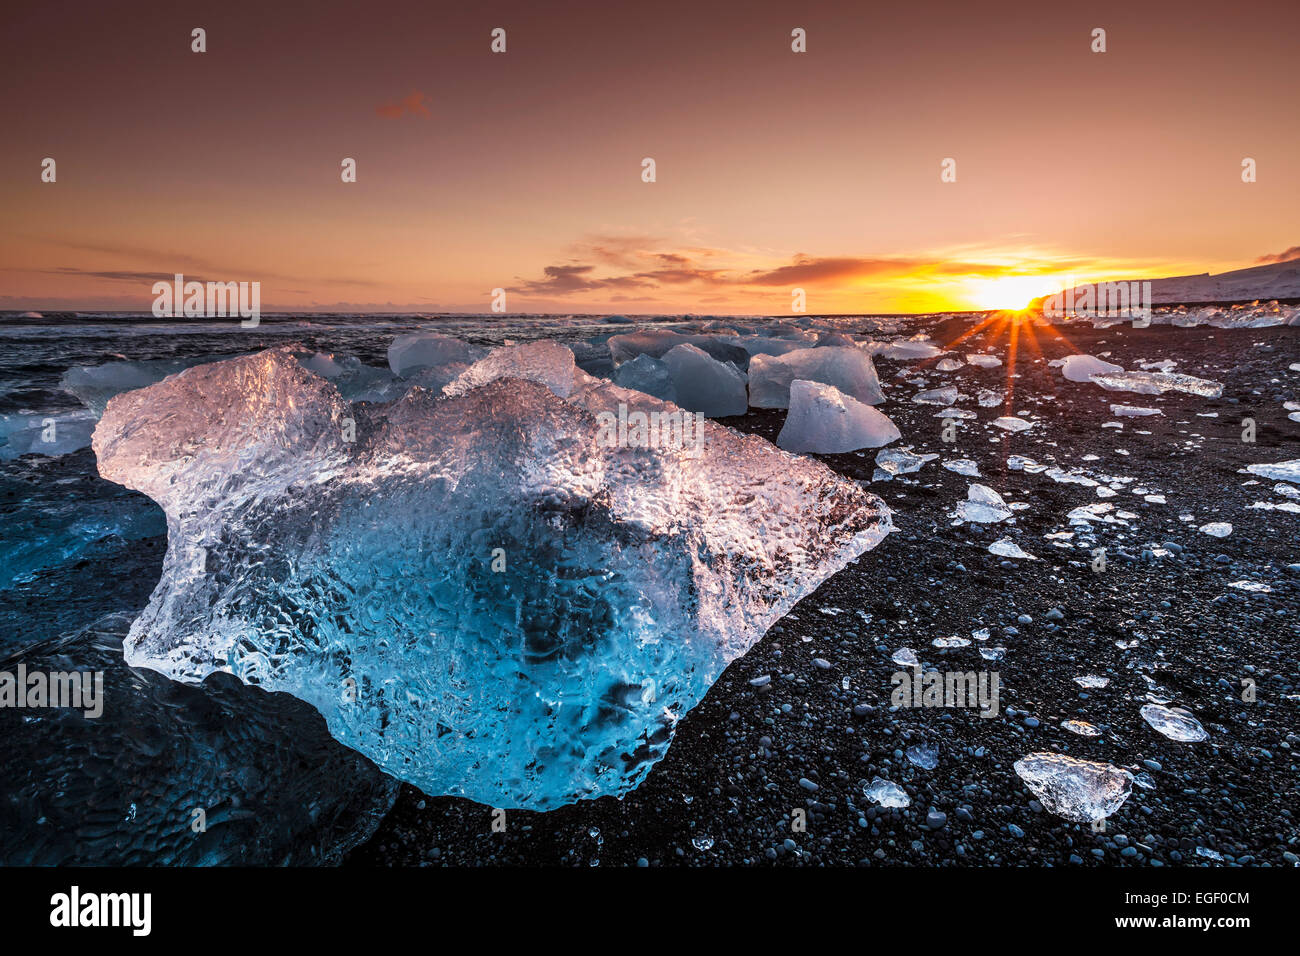 Broken ice from washed up Icebergs on Jokulsarlon black beach at sunset Jokulsarlon South east Iceland - Stock Image